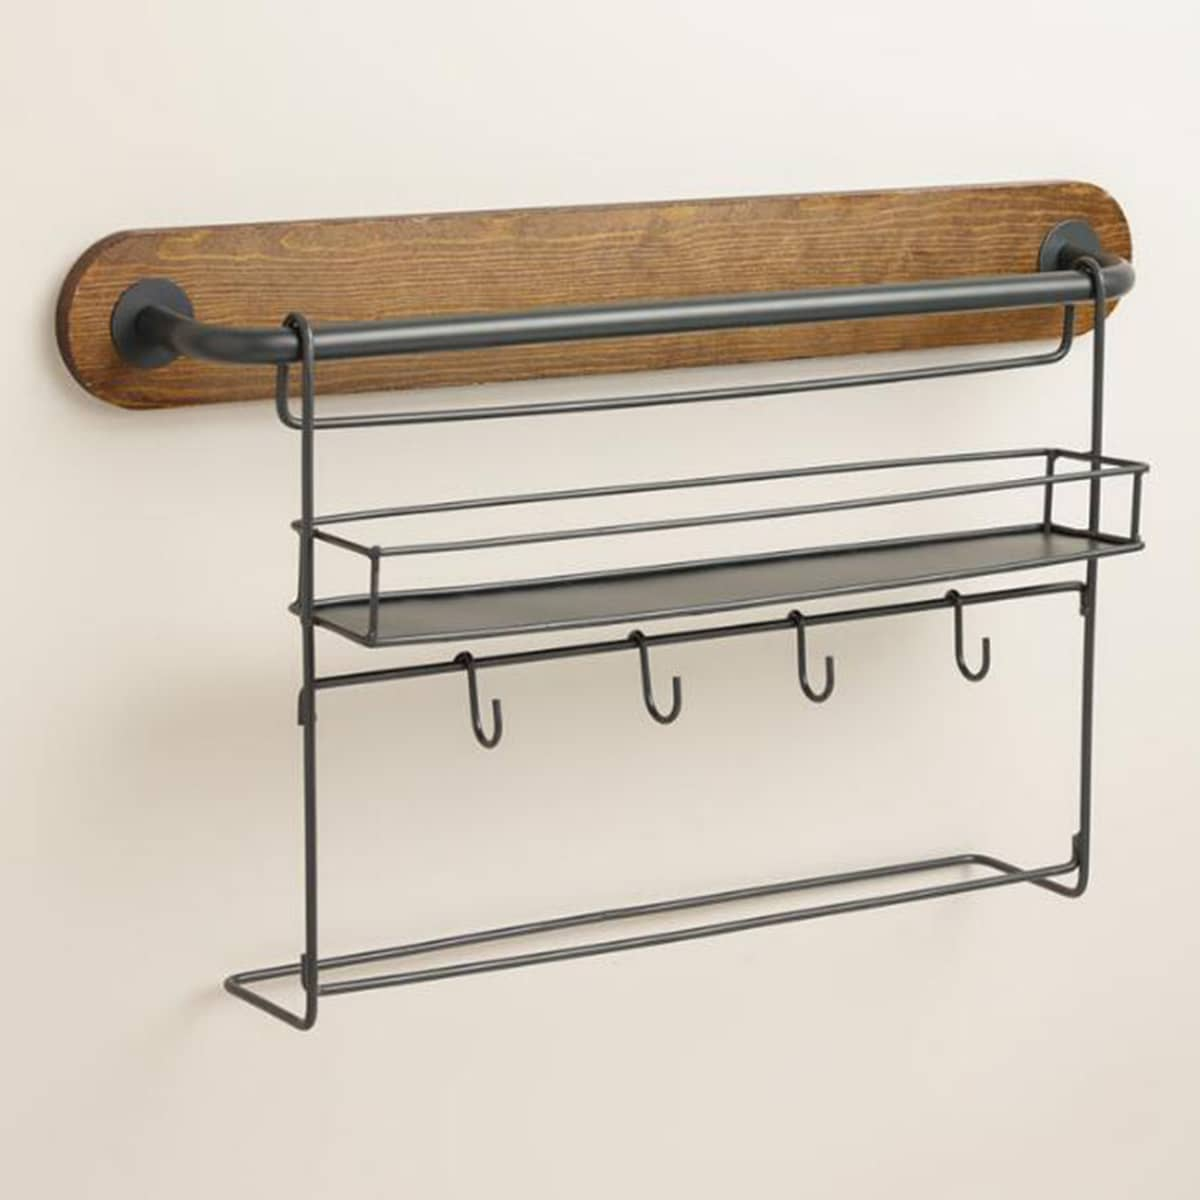 10 of Our Favorite Kitchen Organizers for Spring: gallery image 5